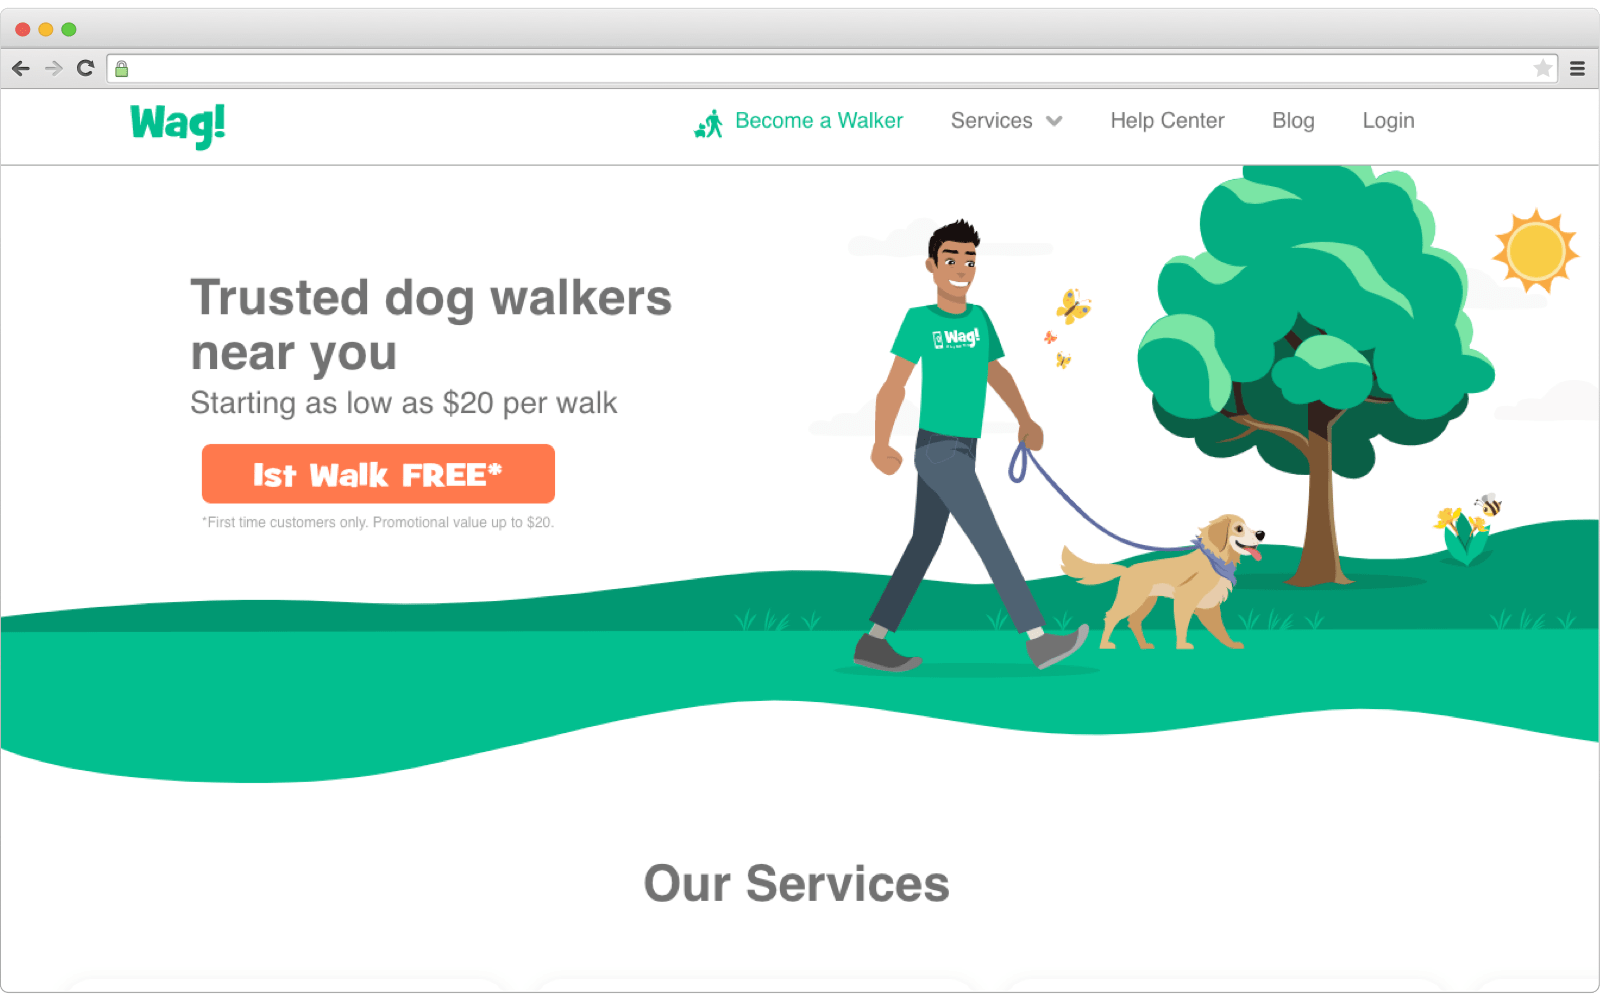 Wag dog walking platform for busy people